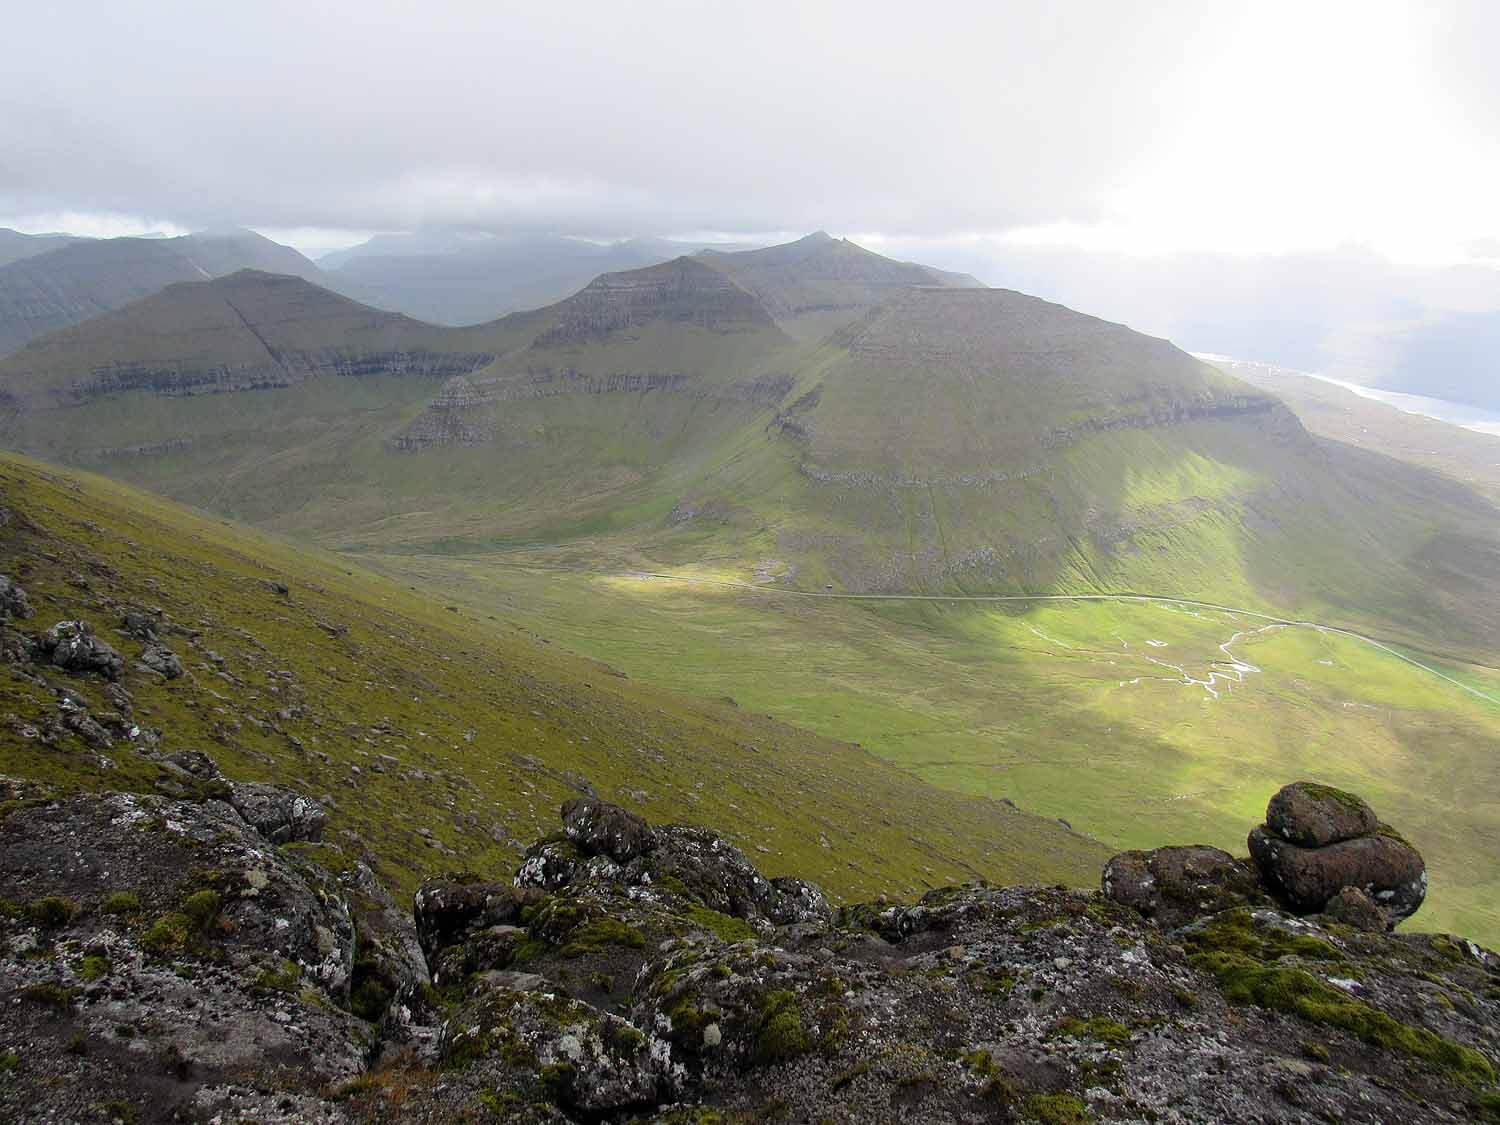 denmark-faroe-islands-slættaratindur-highest-peak-view-valley.JPG